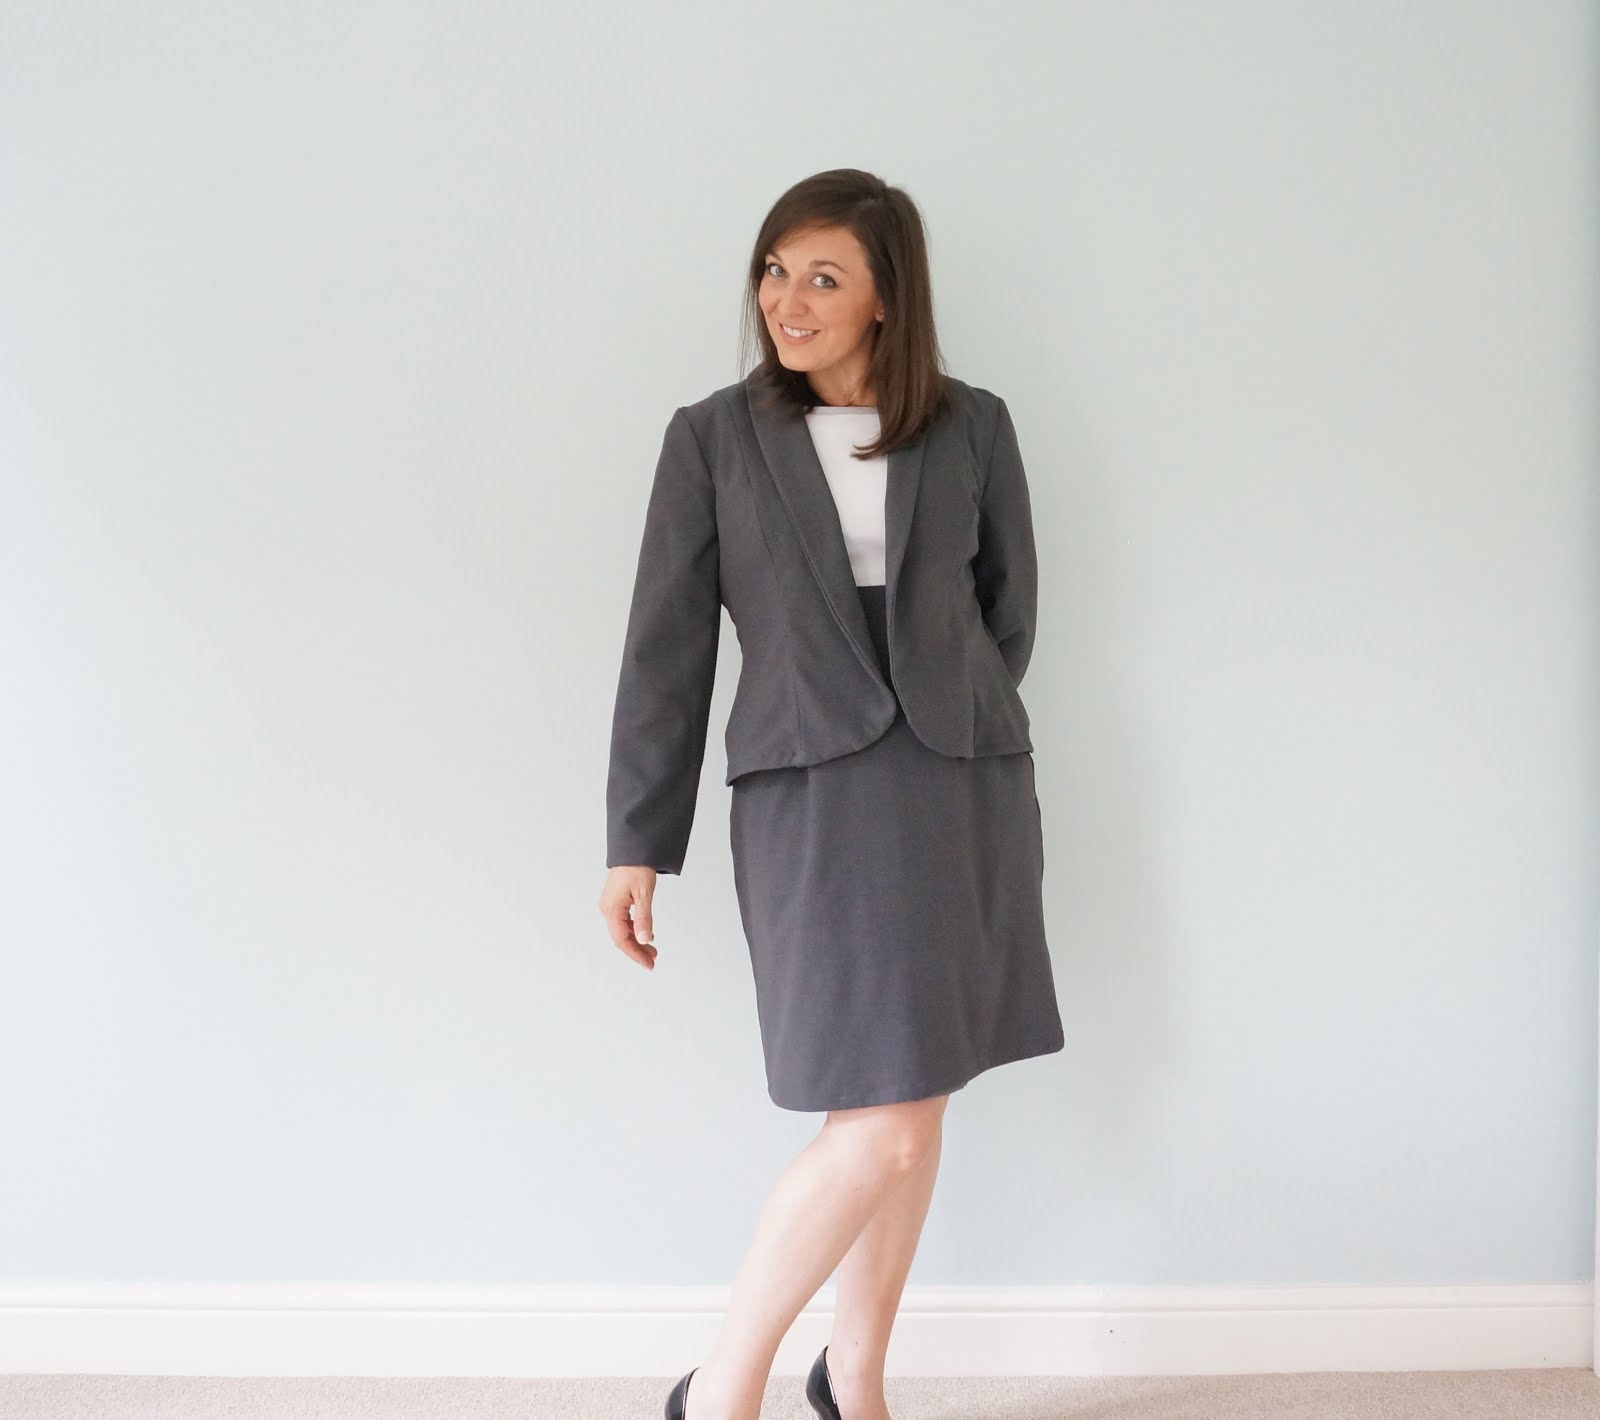 Threadcount Suit Jacket sewing pattern review